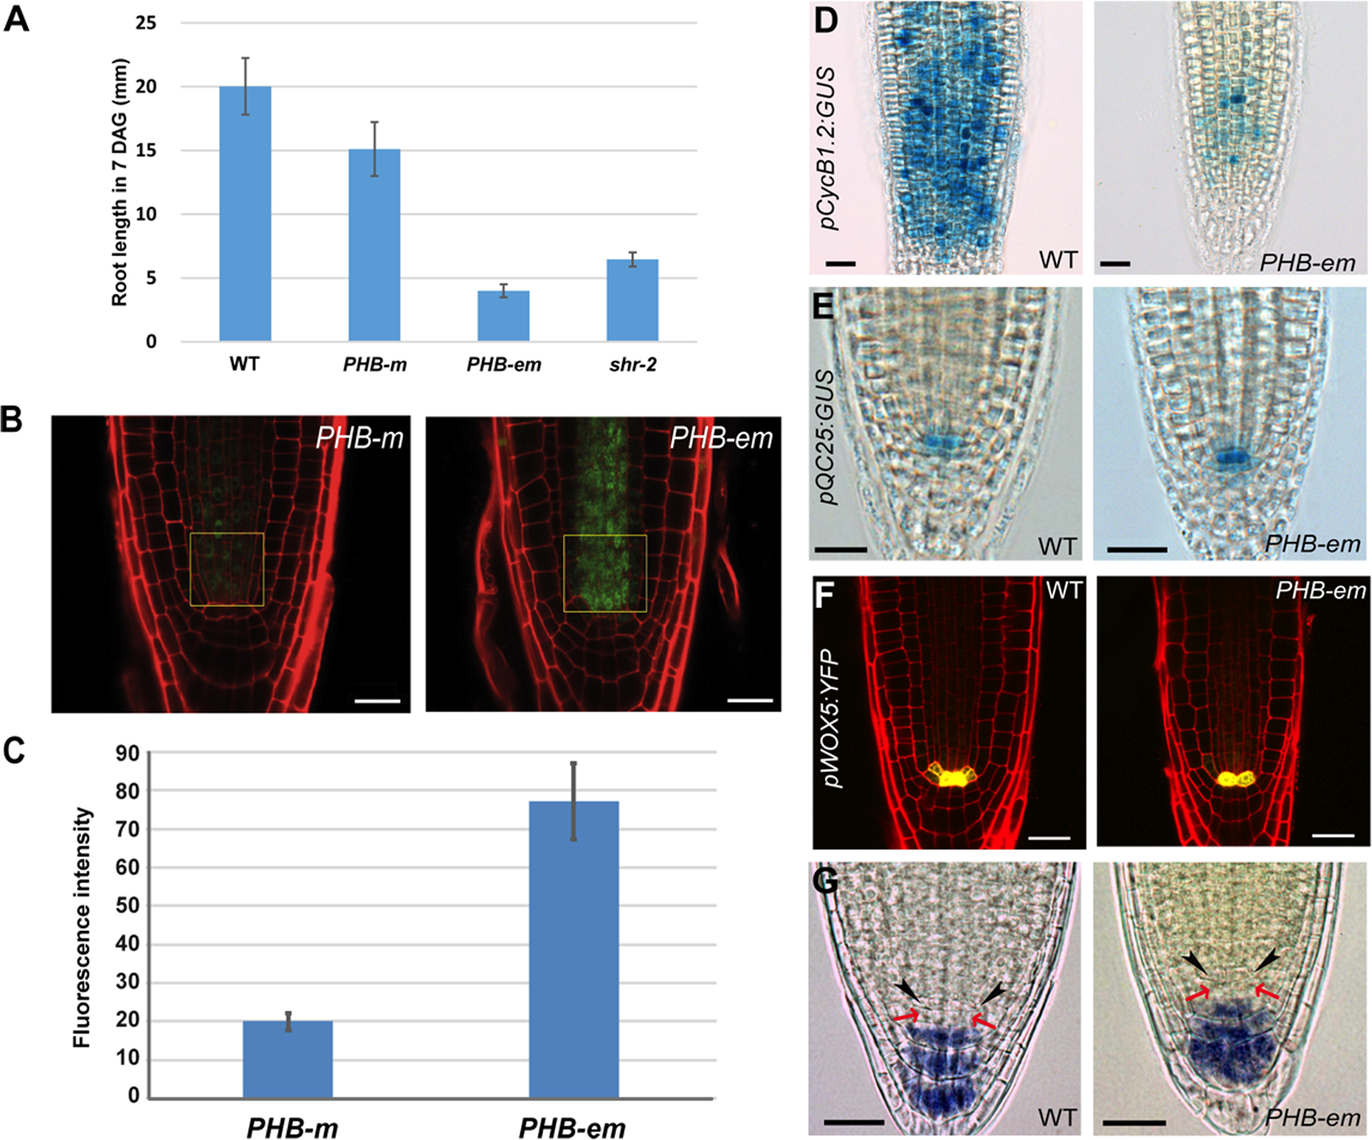 PHB in the stele regulates root meristem and growth activity in a QC-independent manner.